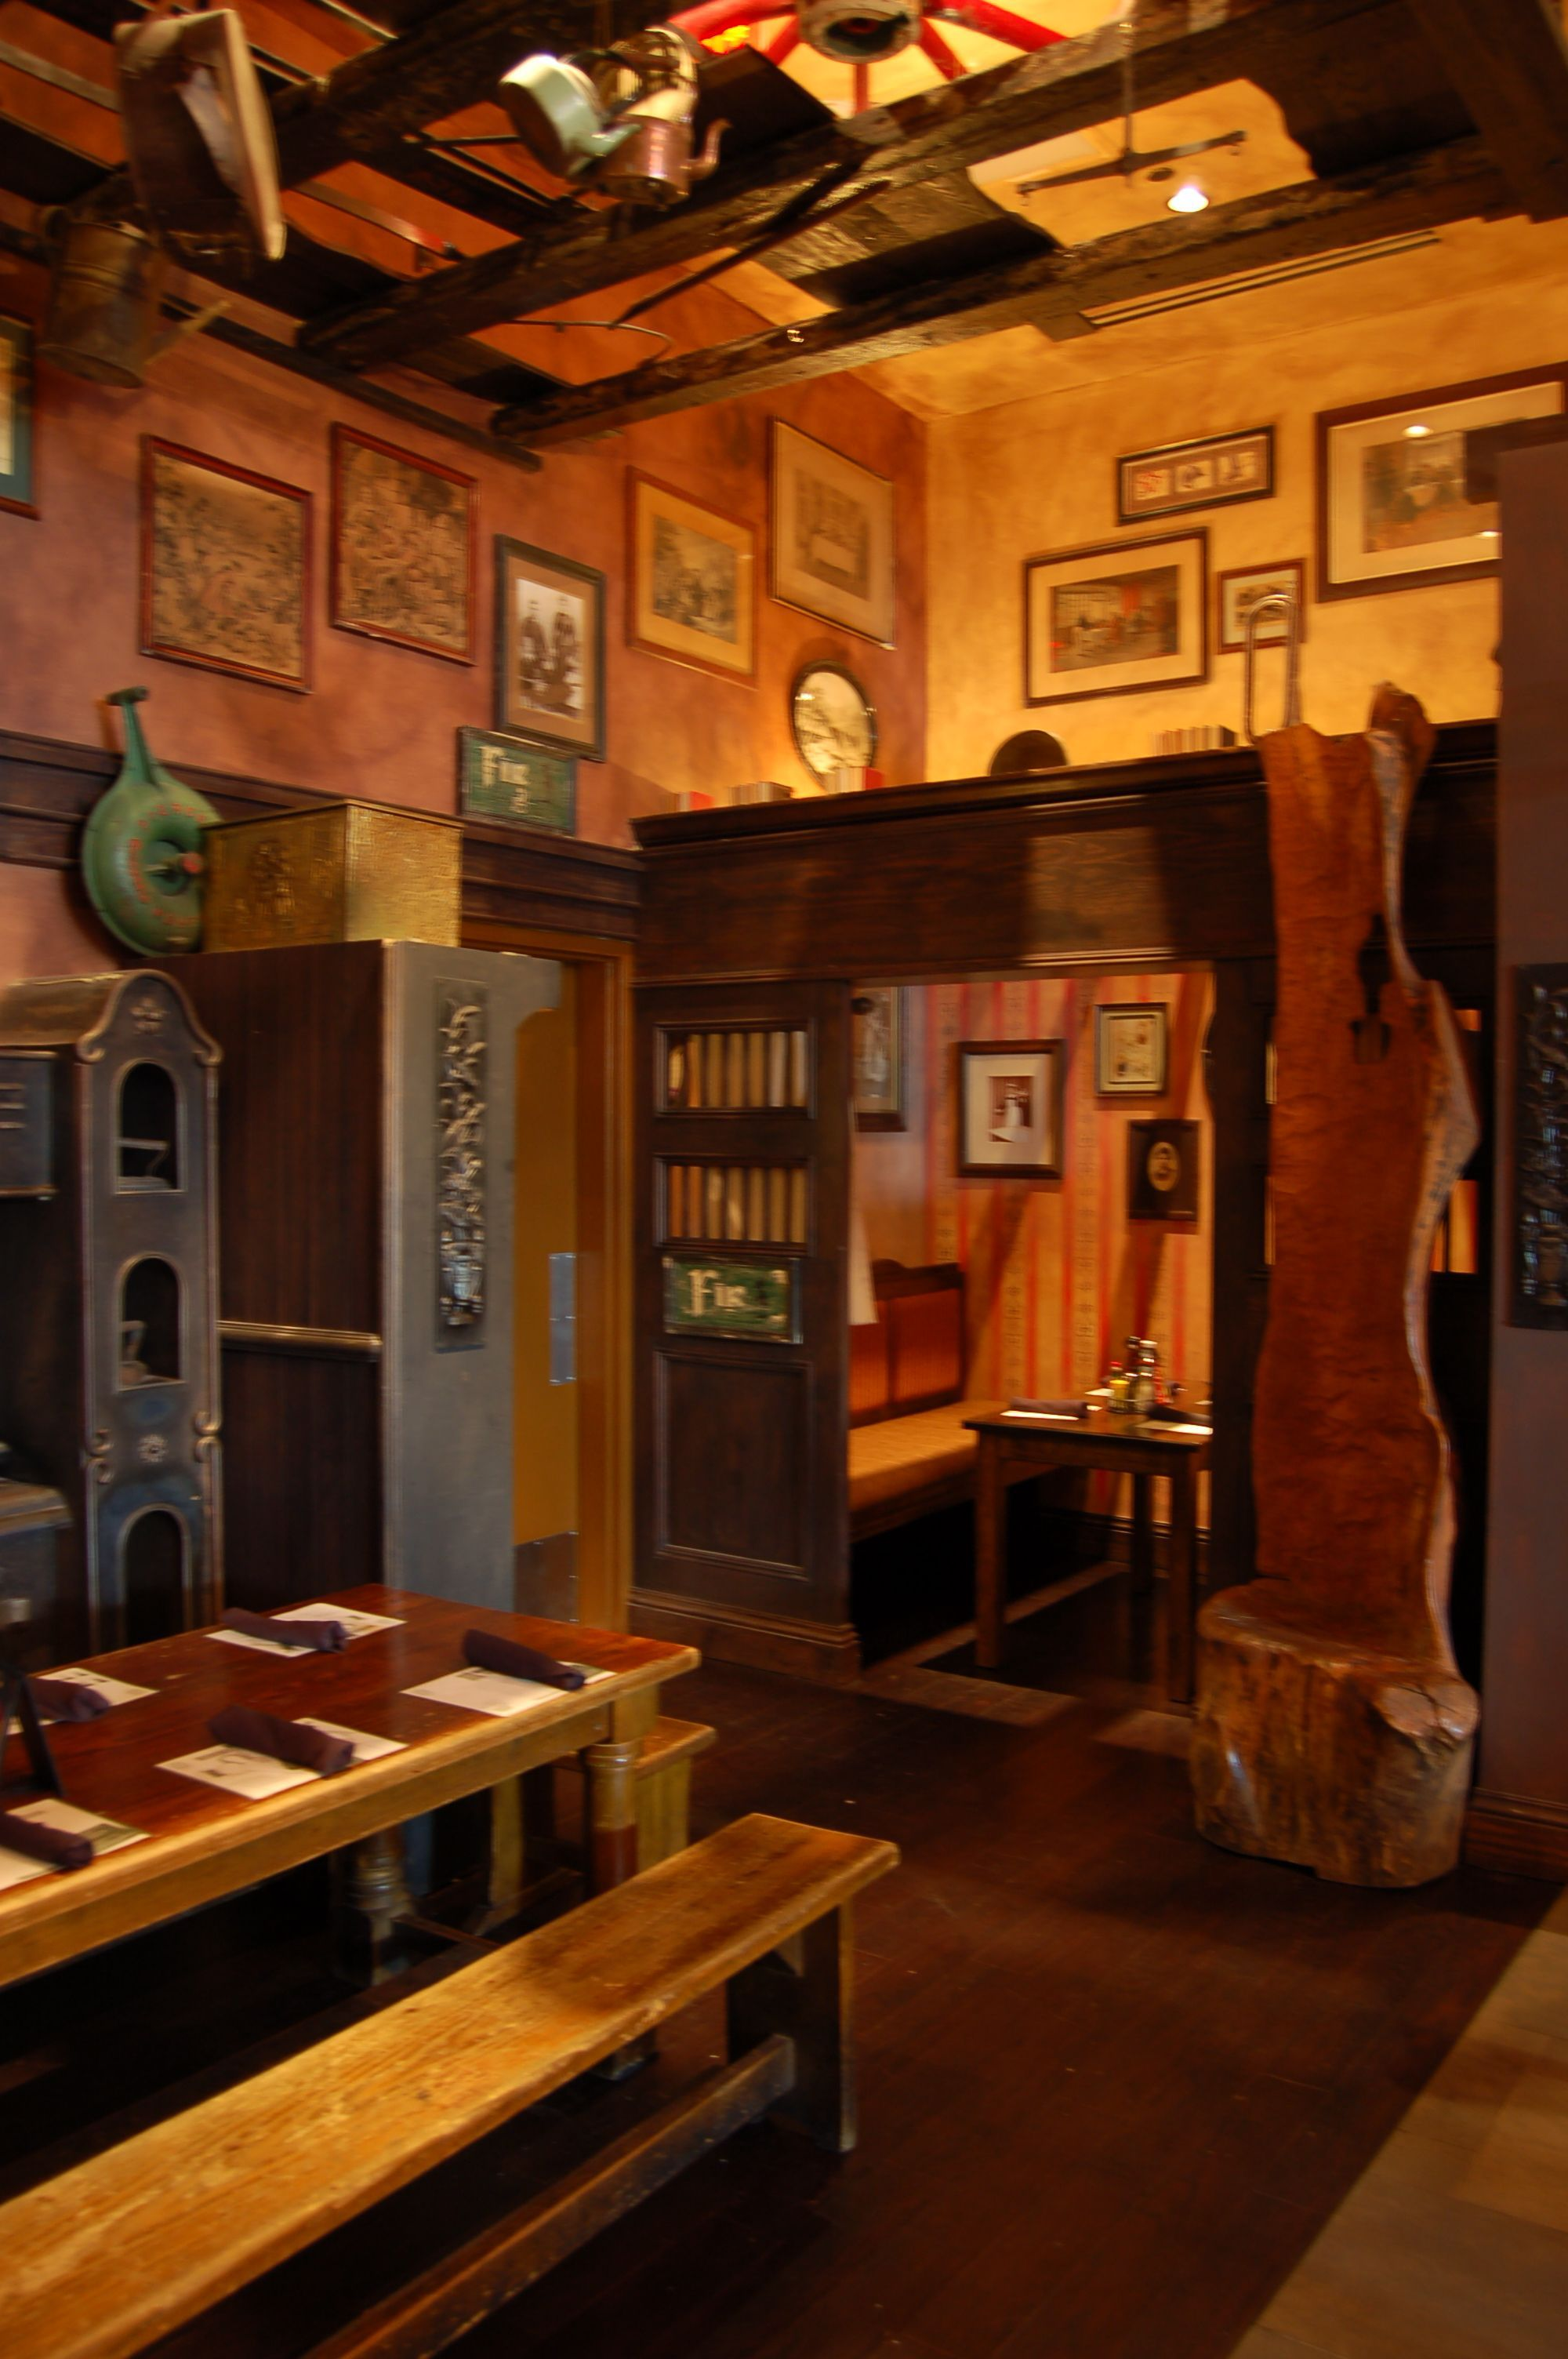 Man Cave Ideas Ireland : Image result for bar snug traveling sound museum